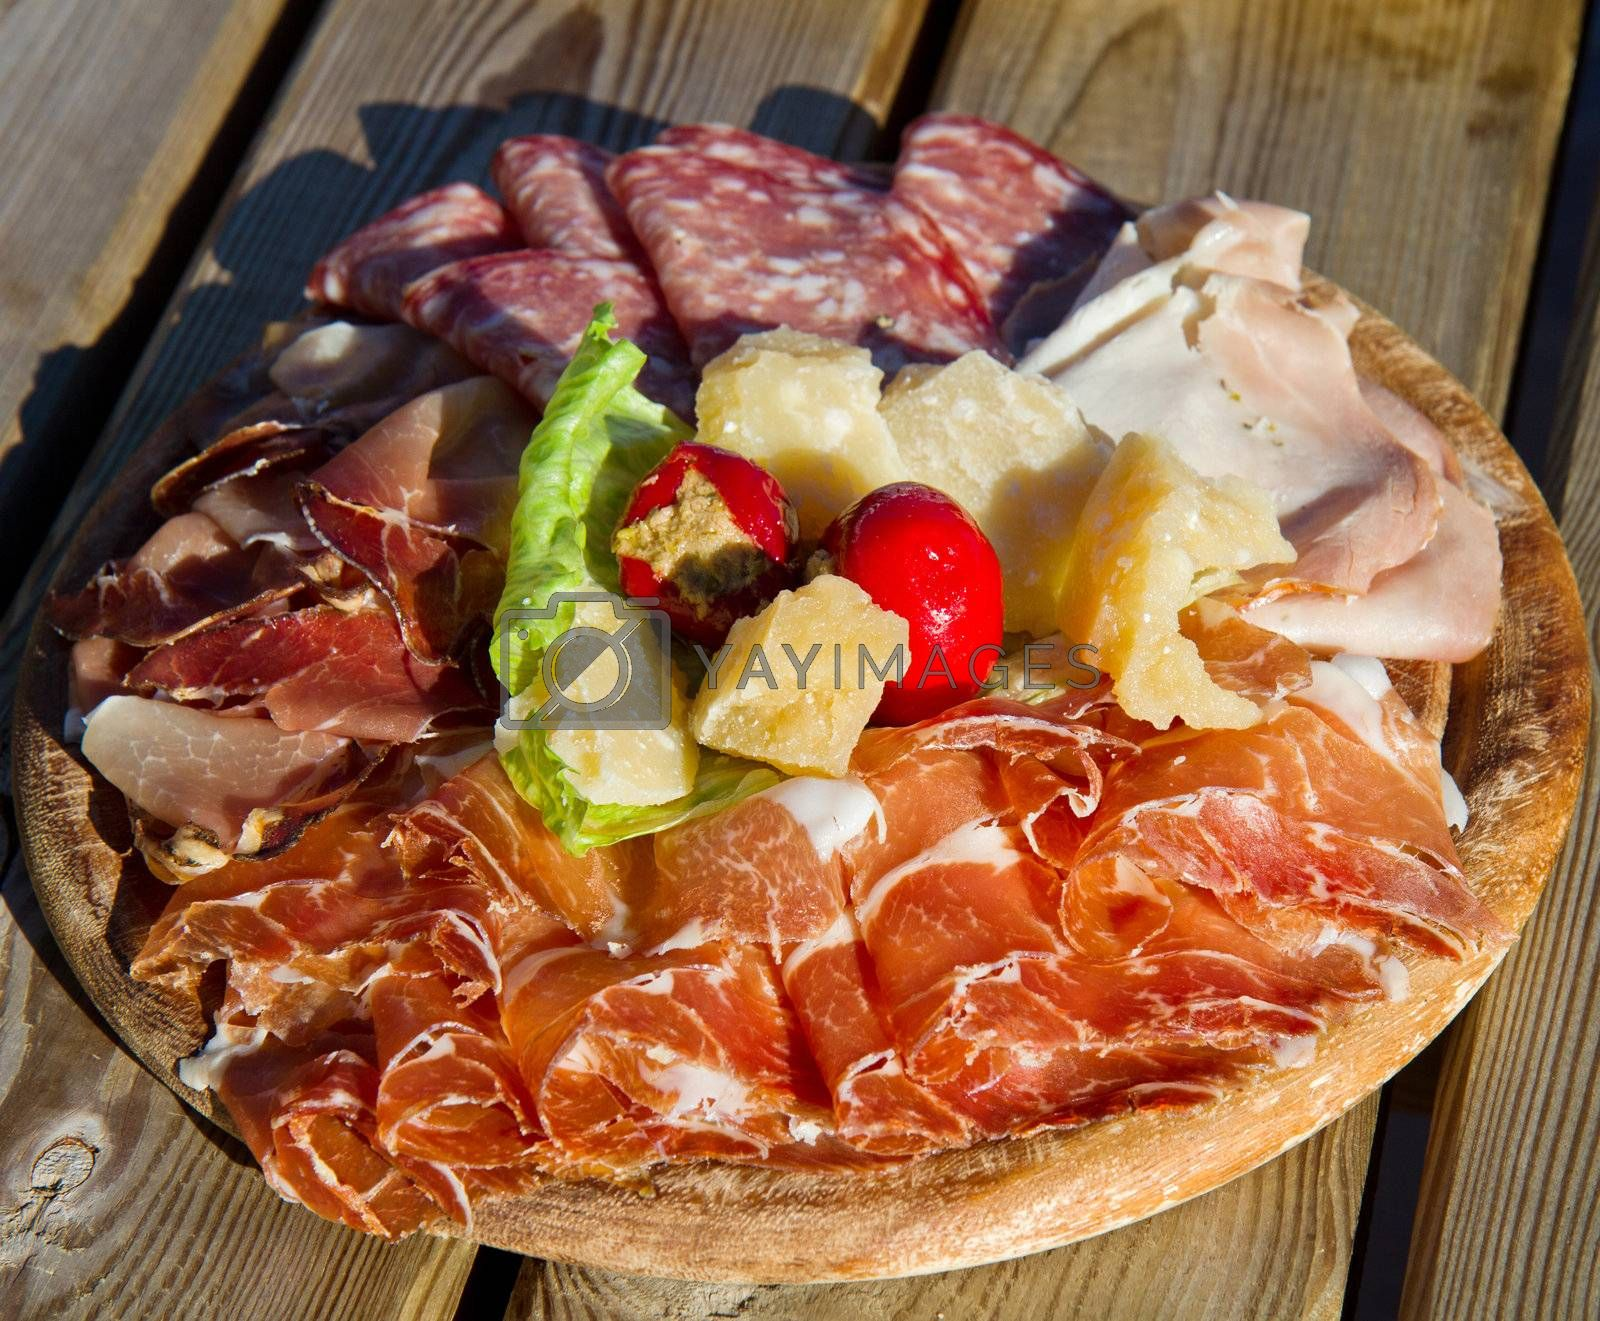 a platter of mixed cured meats, cheese on wood table